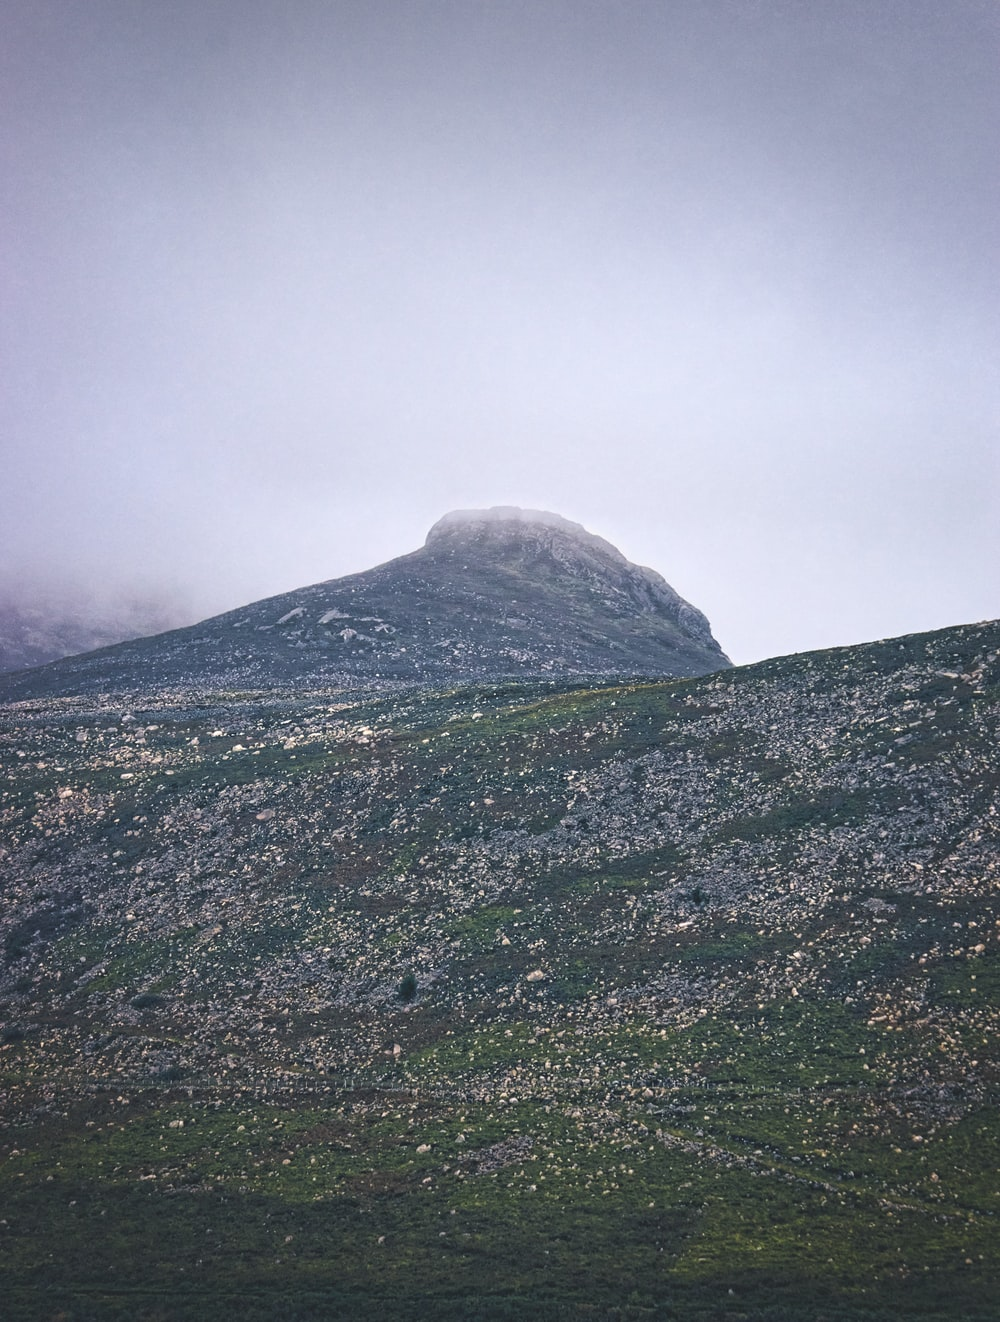 green and white mountain under white sky during daytime